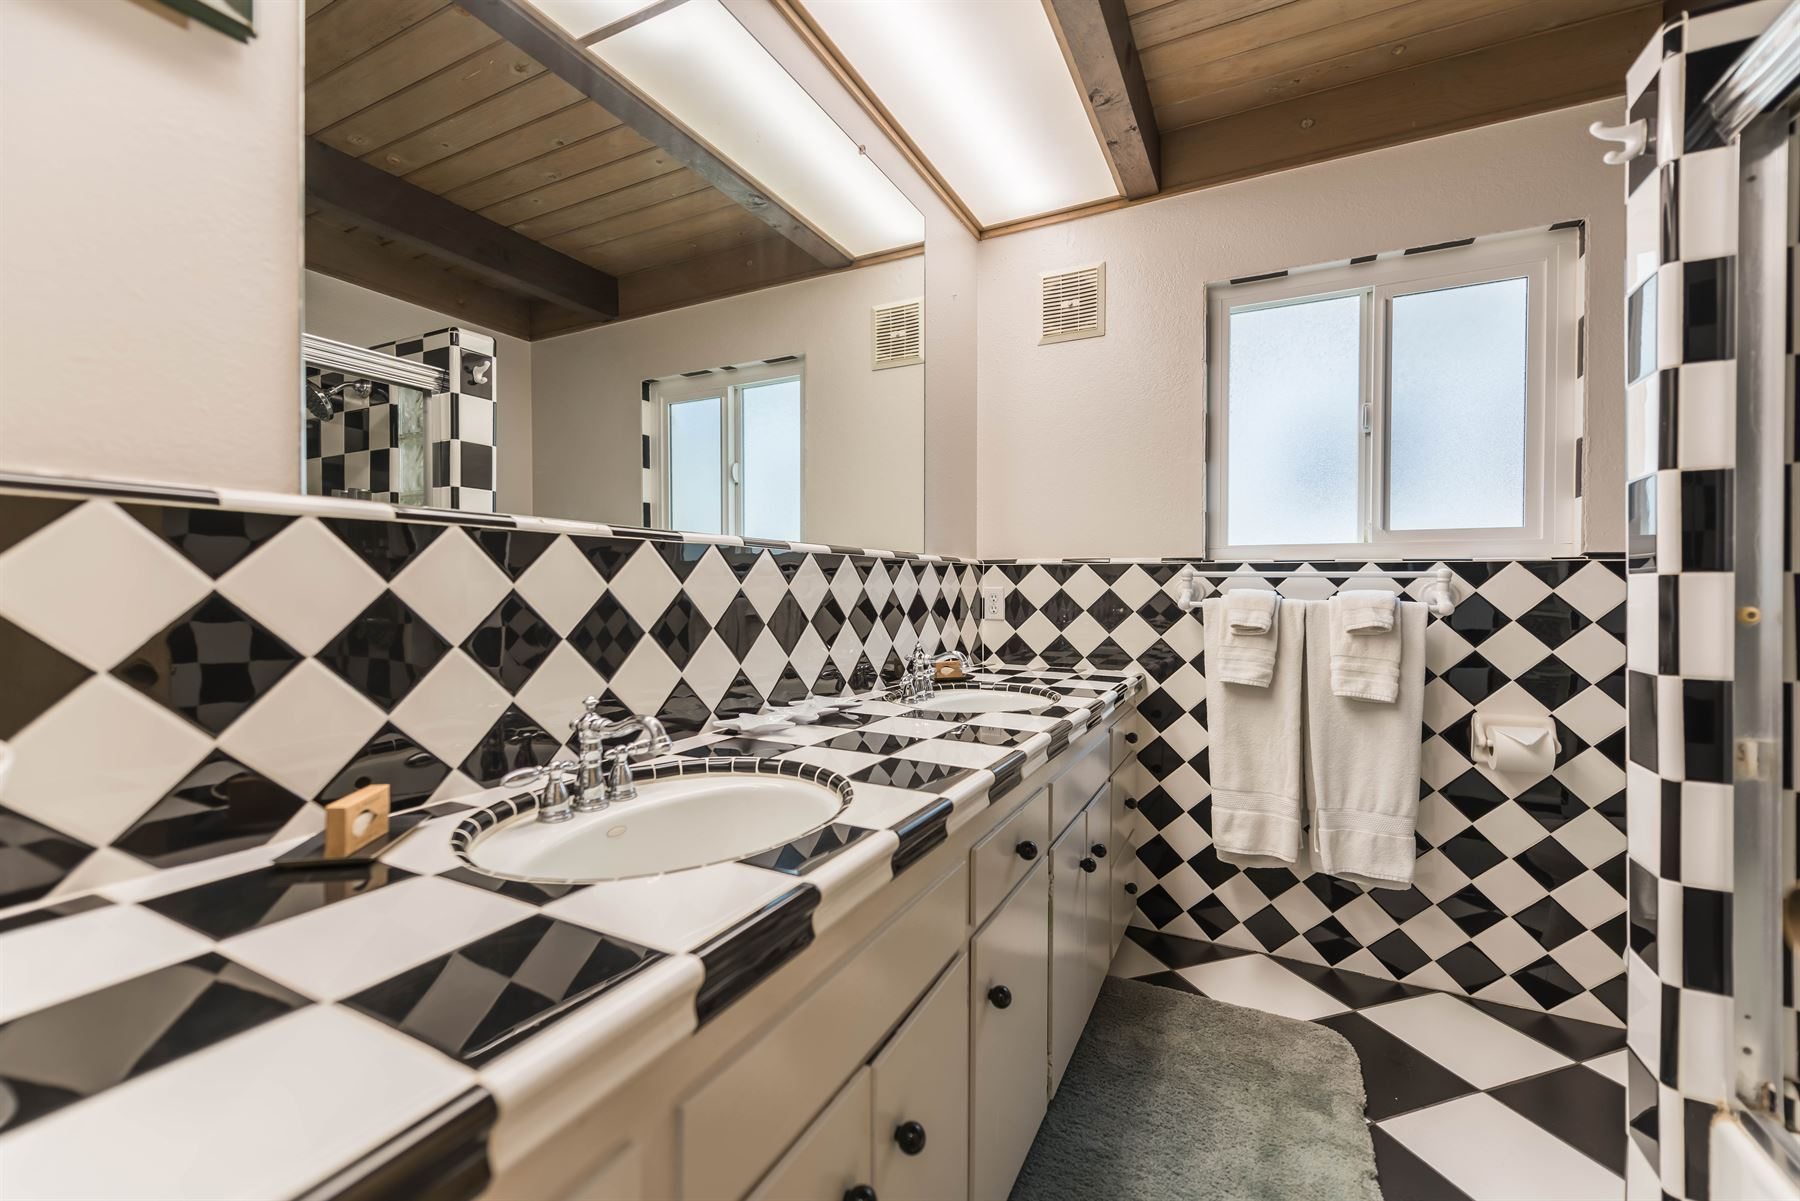 Oceanview Hideaway - Interior - Bathroom with almost entirely checkboard surfaces